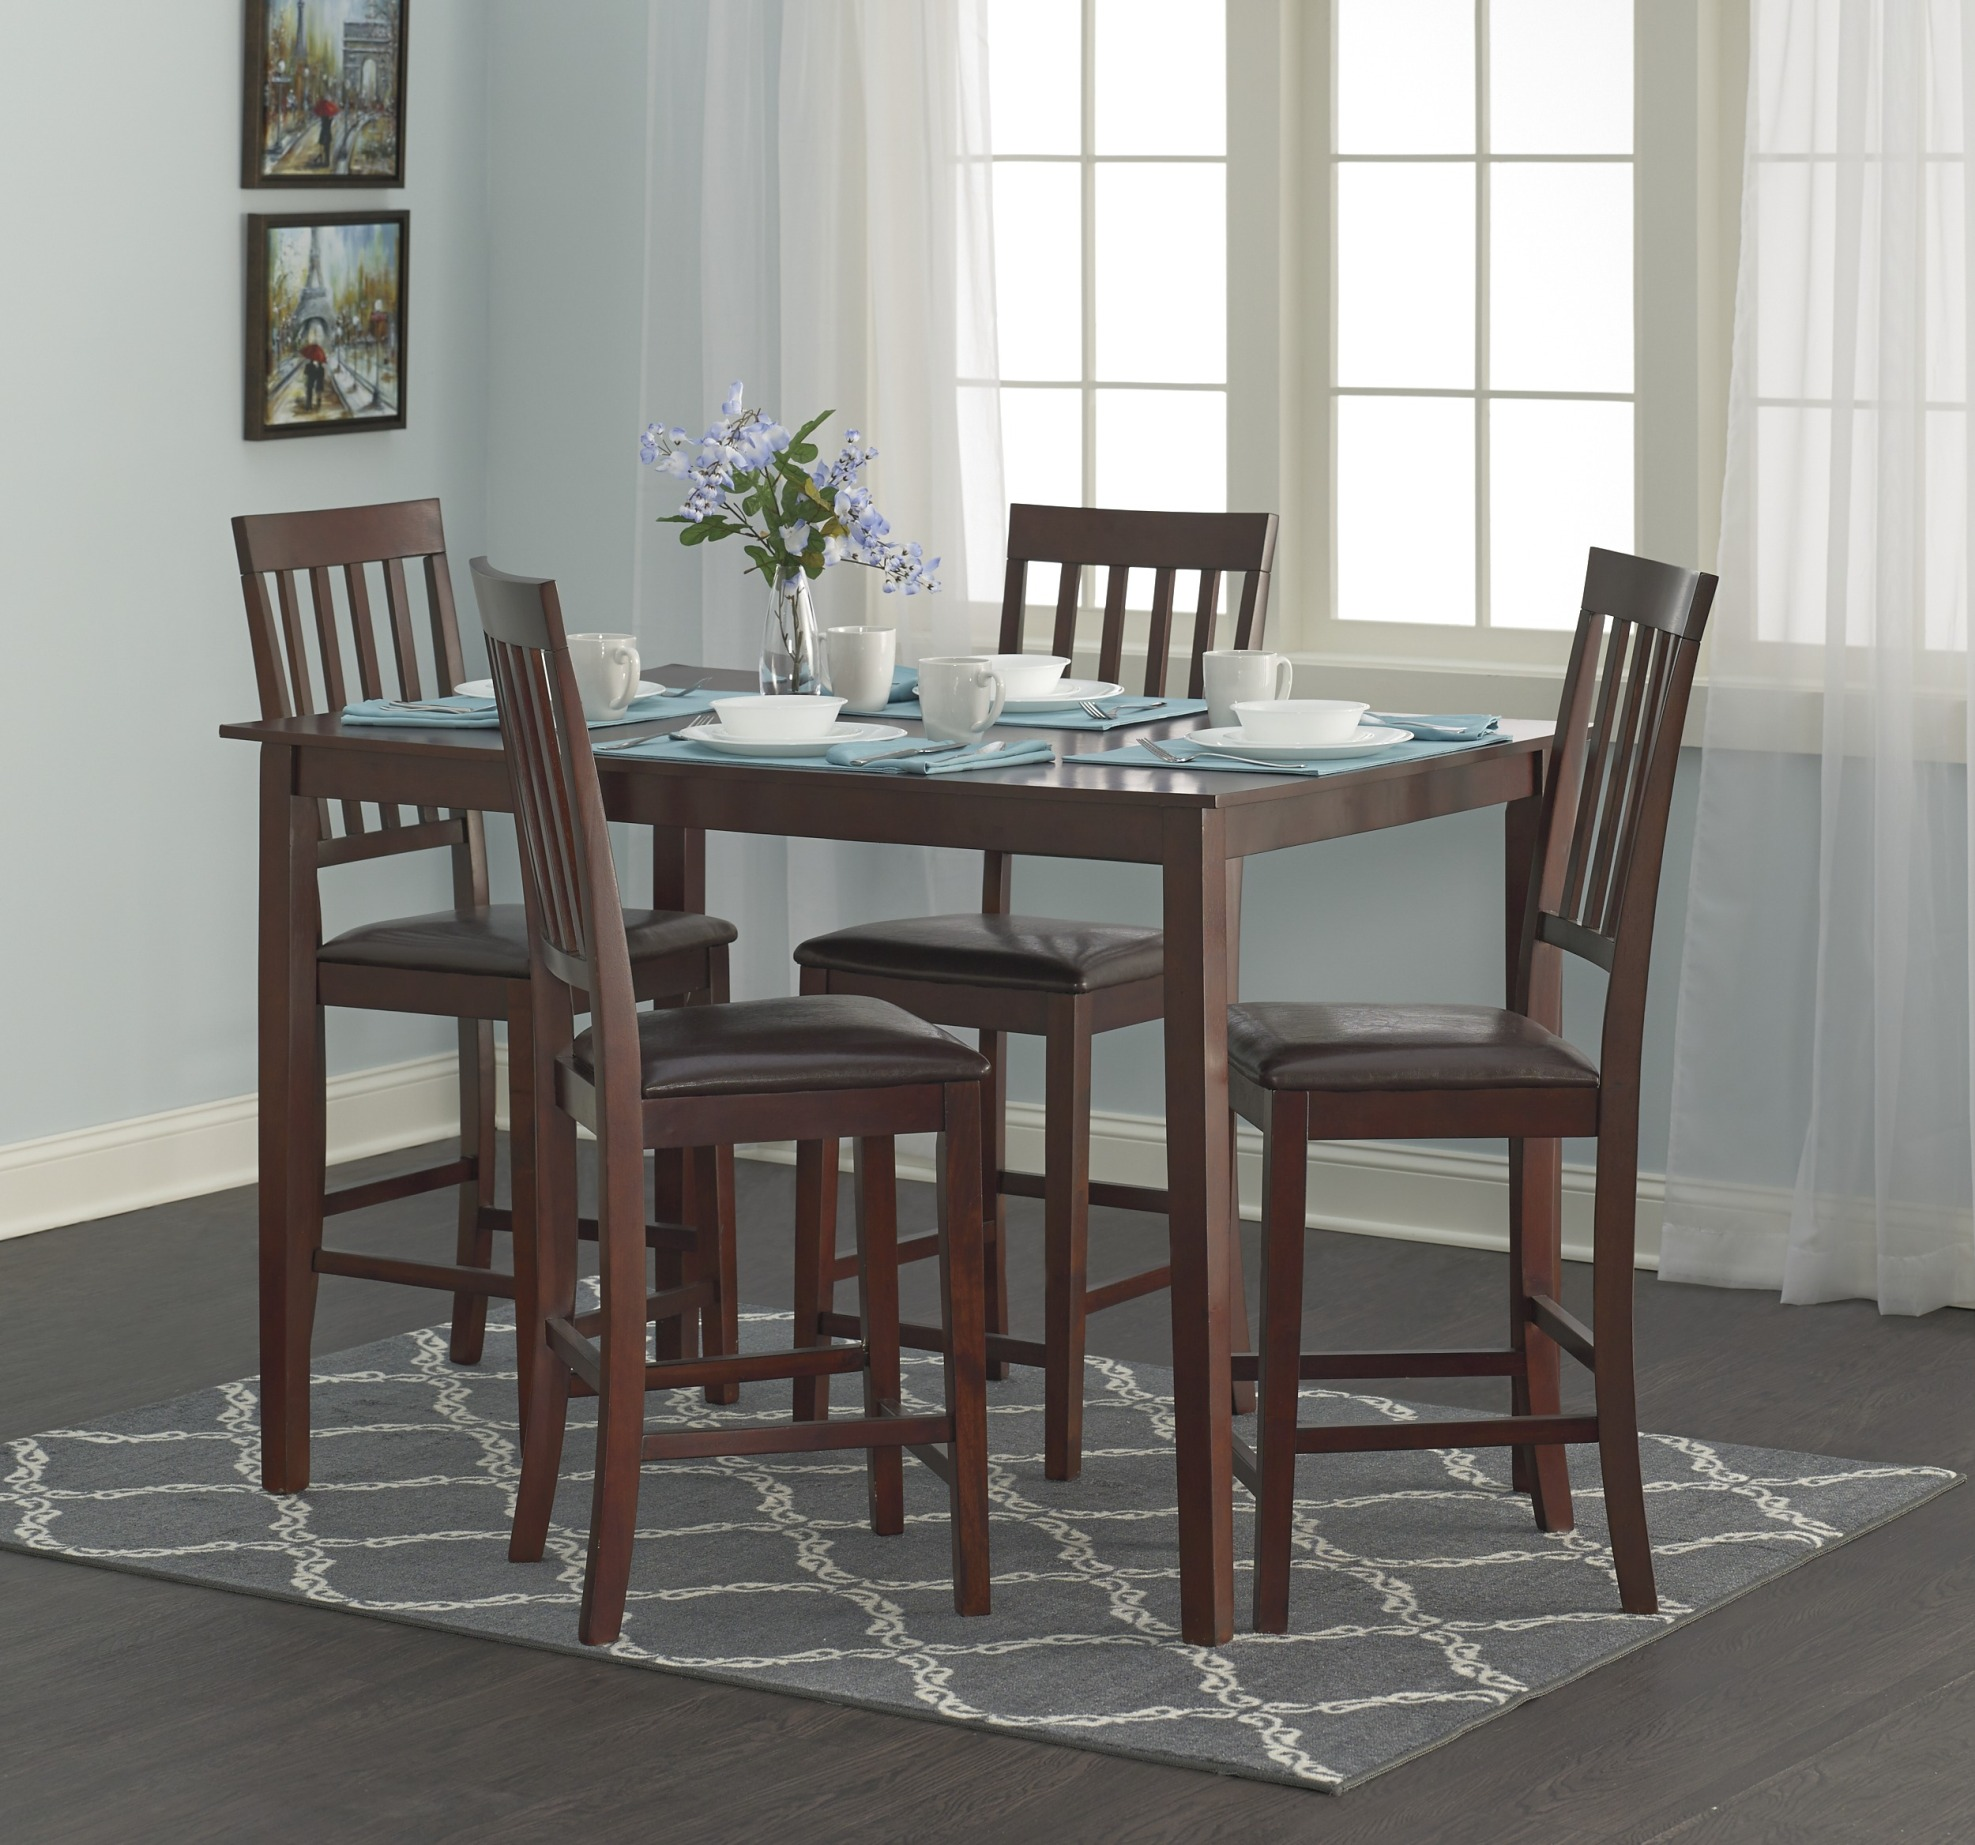 UPC 753793945583 Essential Home Cayman 5pc High Top Dining Set